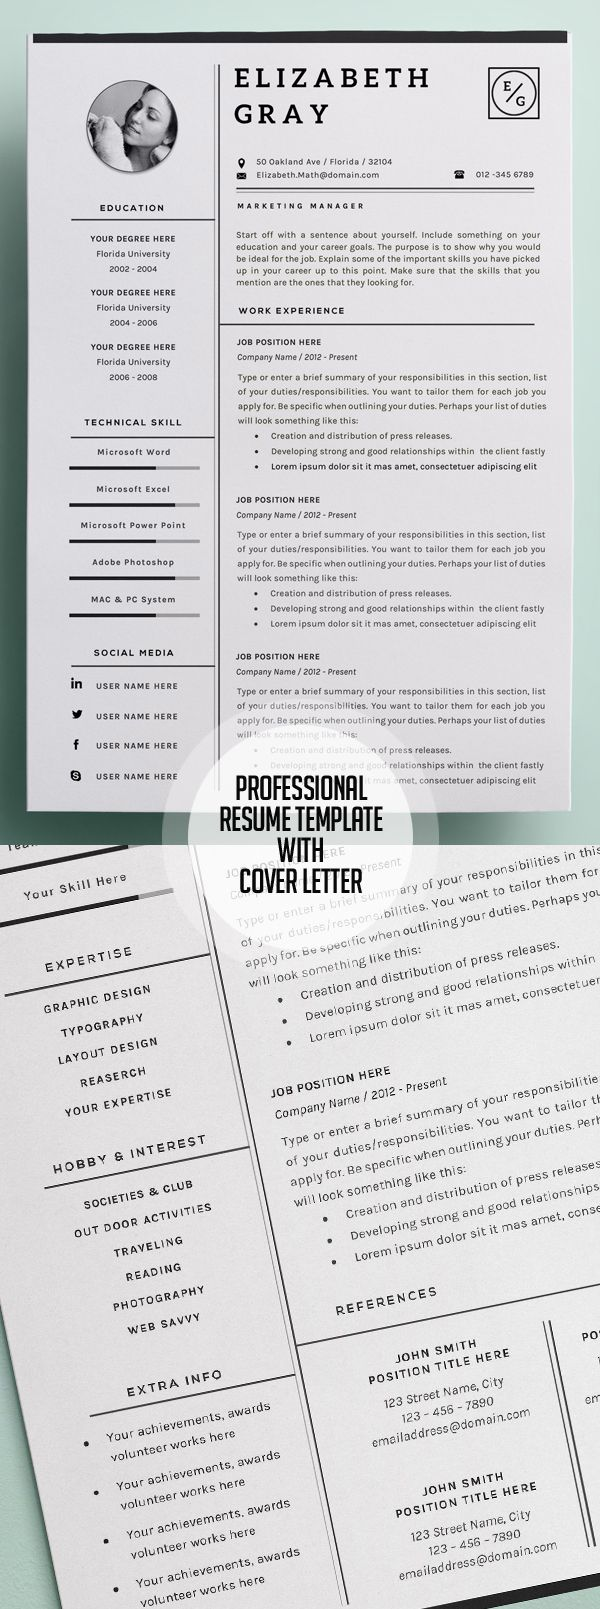 Opposenewapstandardsus  Pleasant  Resume Ideas On Pinterest  Resume Resume Templates And  With Glamorous Professional And Modern Resume Template With Page Cover Cvtemplate With Archaic College Student Resume Examples Little Experience Also Resume Templates Word  In Addition Optimal Resume Toledo And Resume Builder For High School Students As Well As Bring Resume To Interview Additionally Optimal Resume Ou From Pinterestcom With Opposenewapstandardsus  Glamorous  Resume Ideas On Pinterest  Resume Resume Templates And  With Archaic Professional And Modern Resume Template With Page Cover Cvtemplate And Pleasant College Student Resume Examples Little Experience Also Resume Templates Word  In Addition Optimal Resume Toledo From Pinterestcom